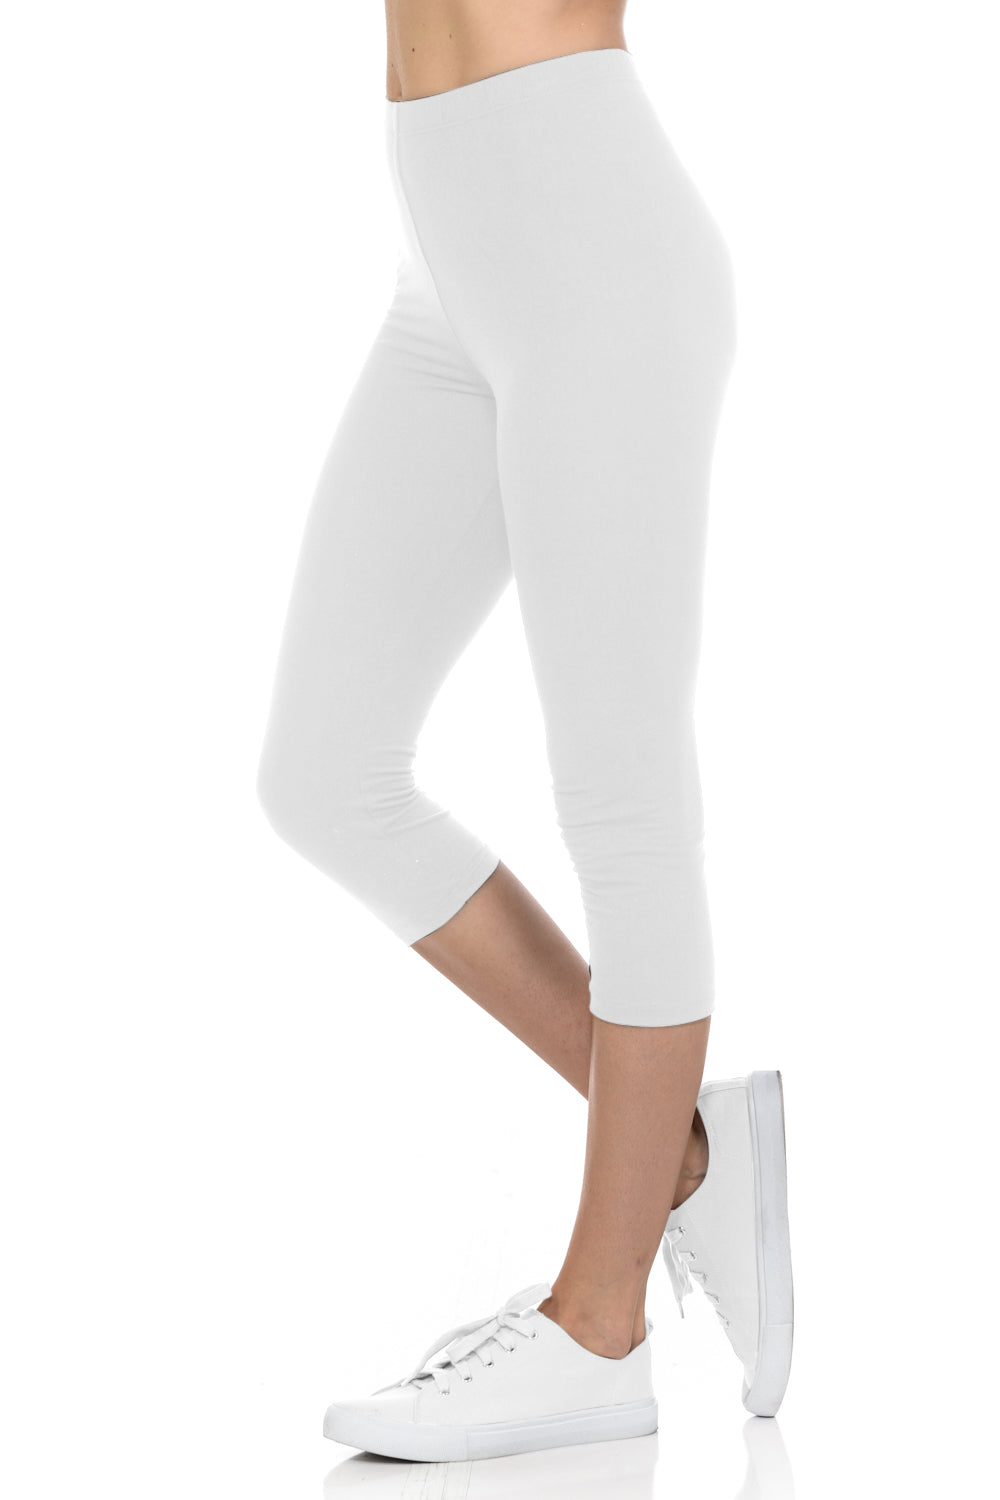 bluensquare Women's Plus Size Capri Leggings Premium Soft and Stretched Cropped legging- White